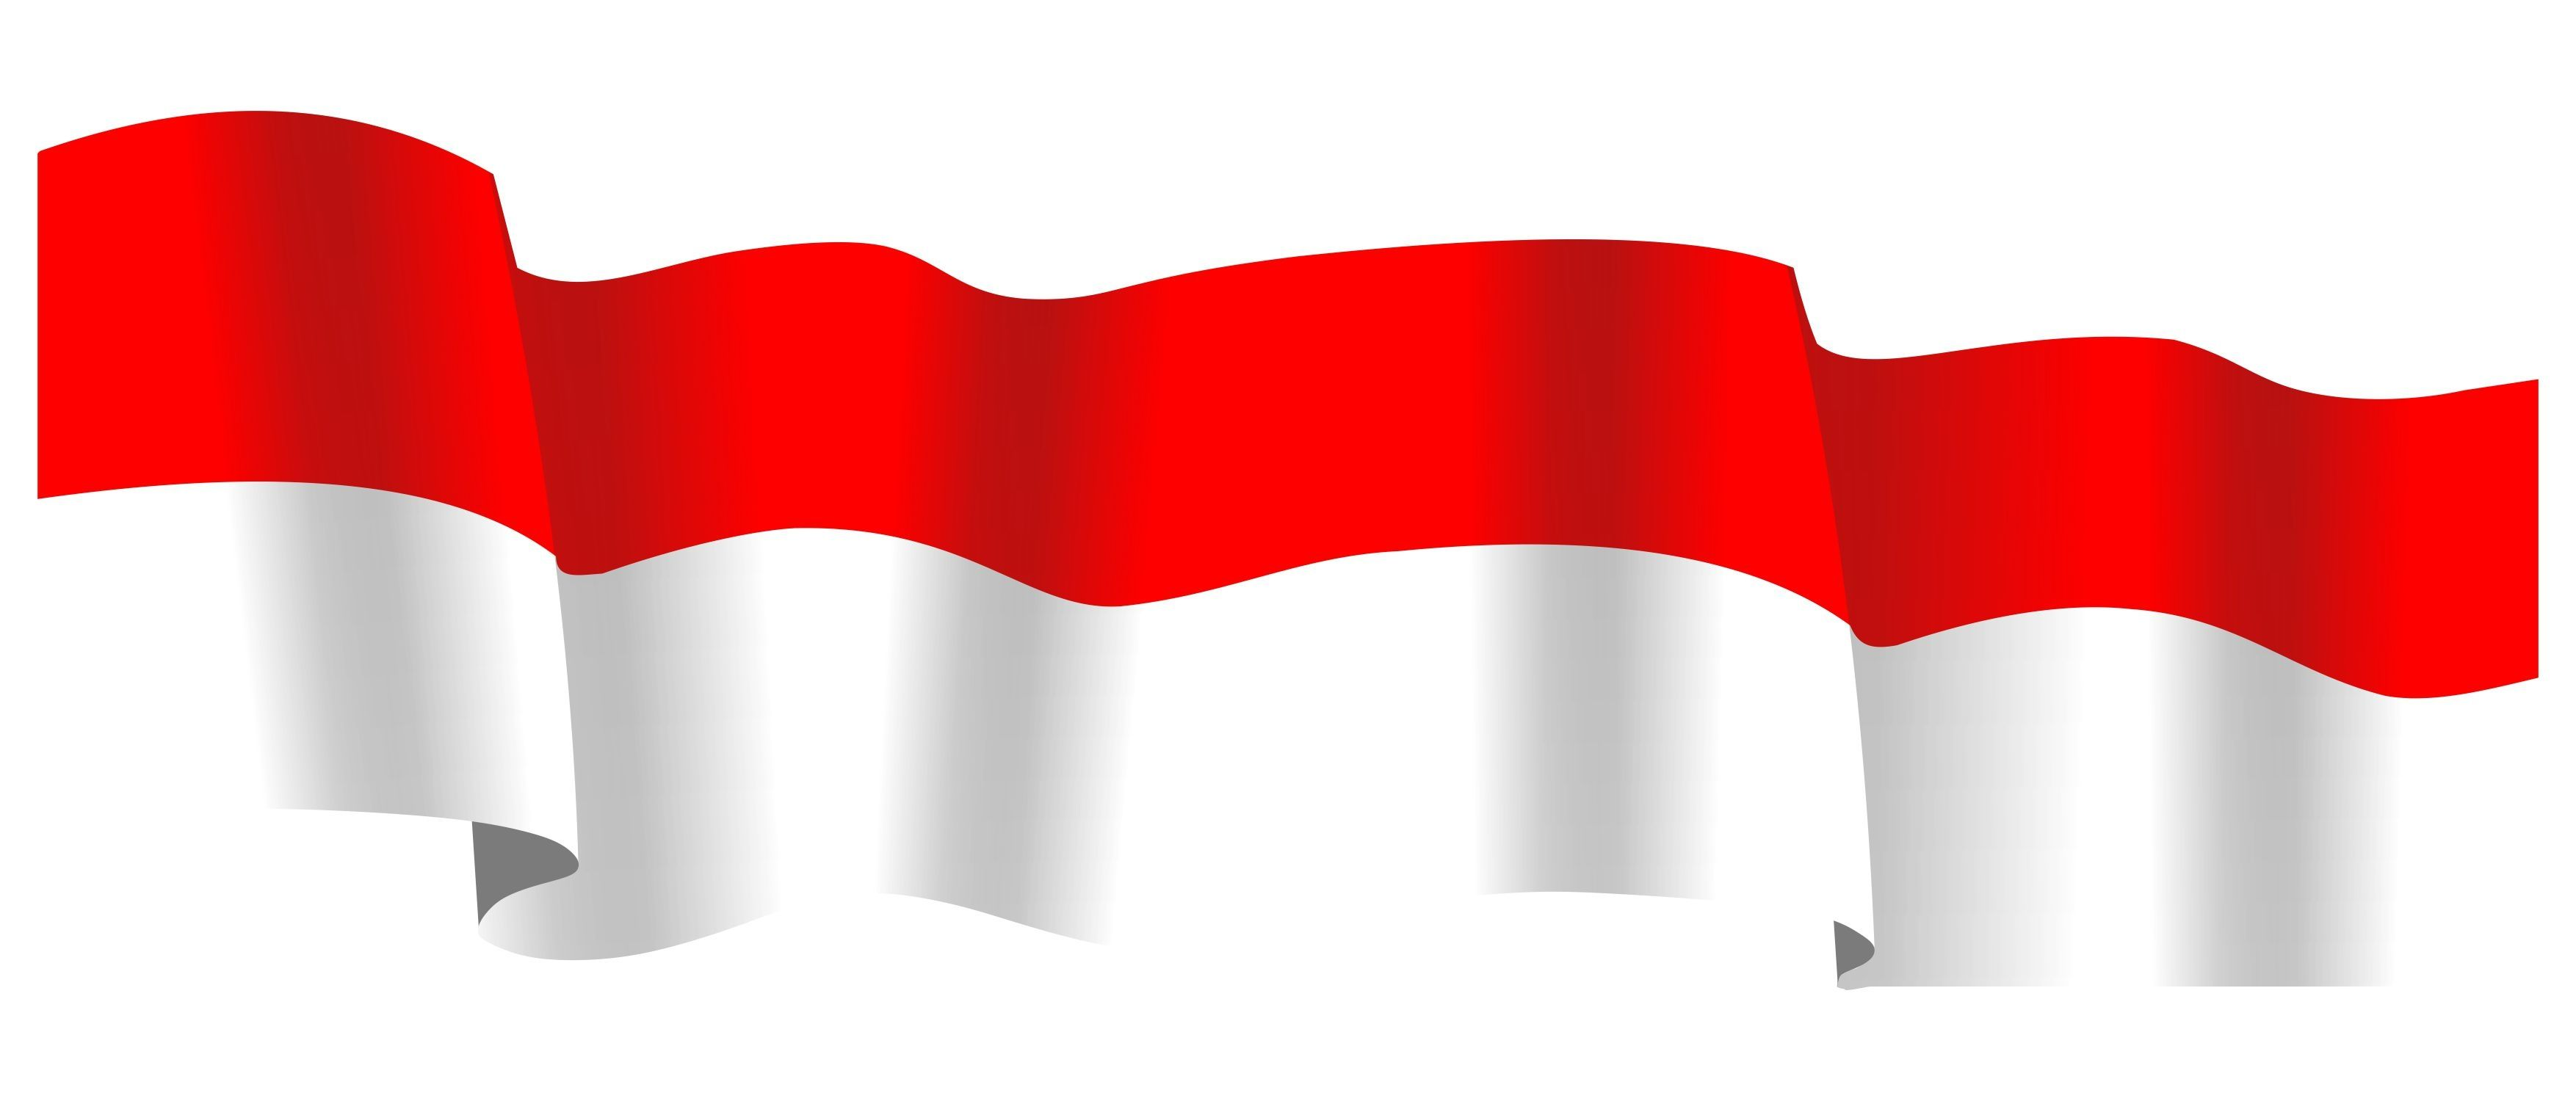 30+ Background Banner Bendera Merah Putih